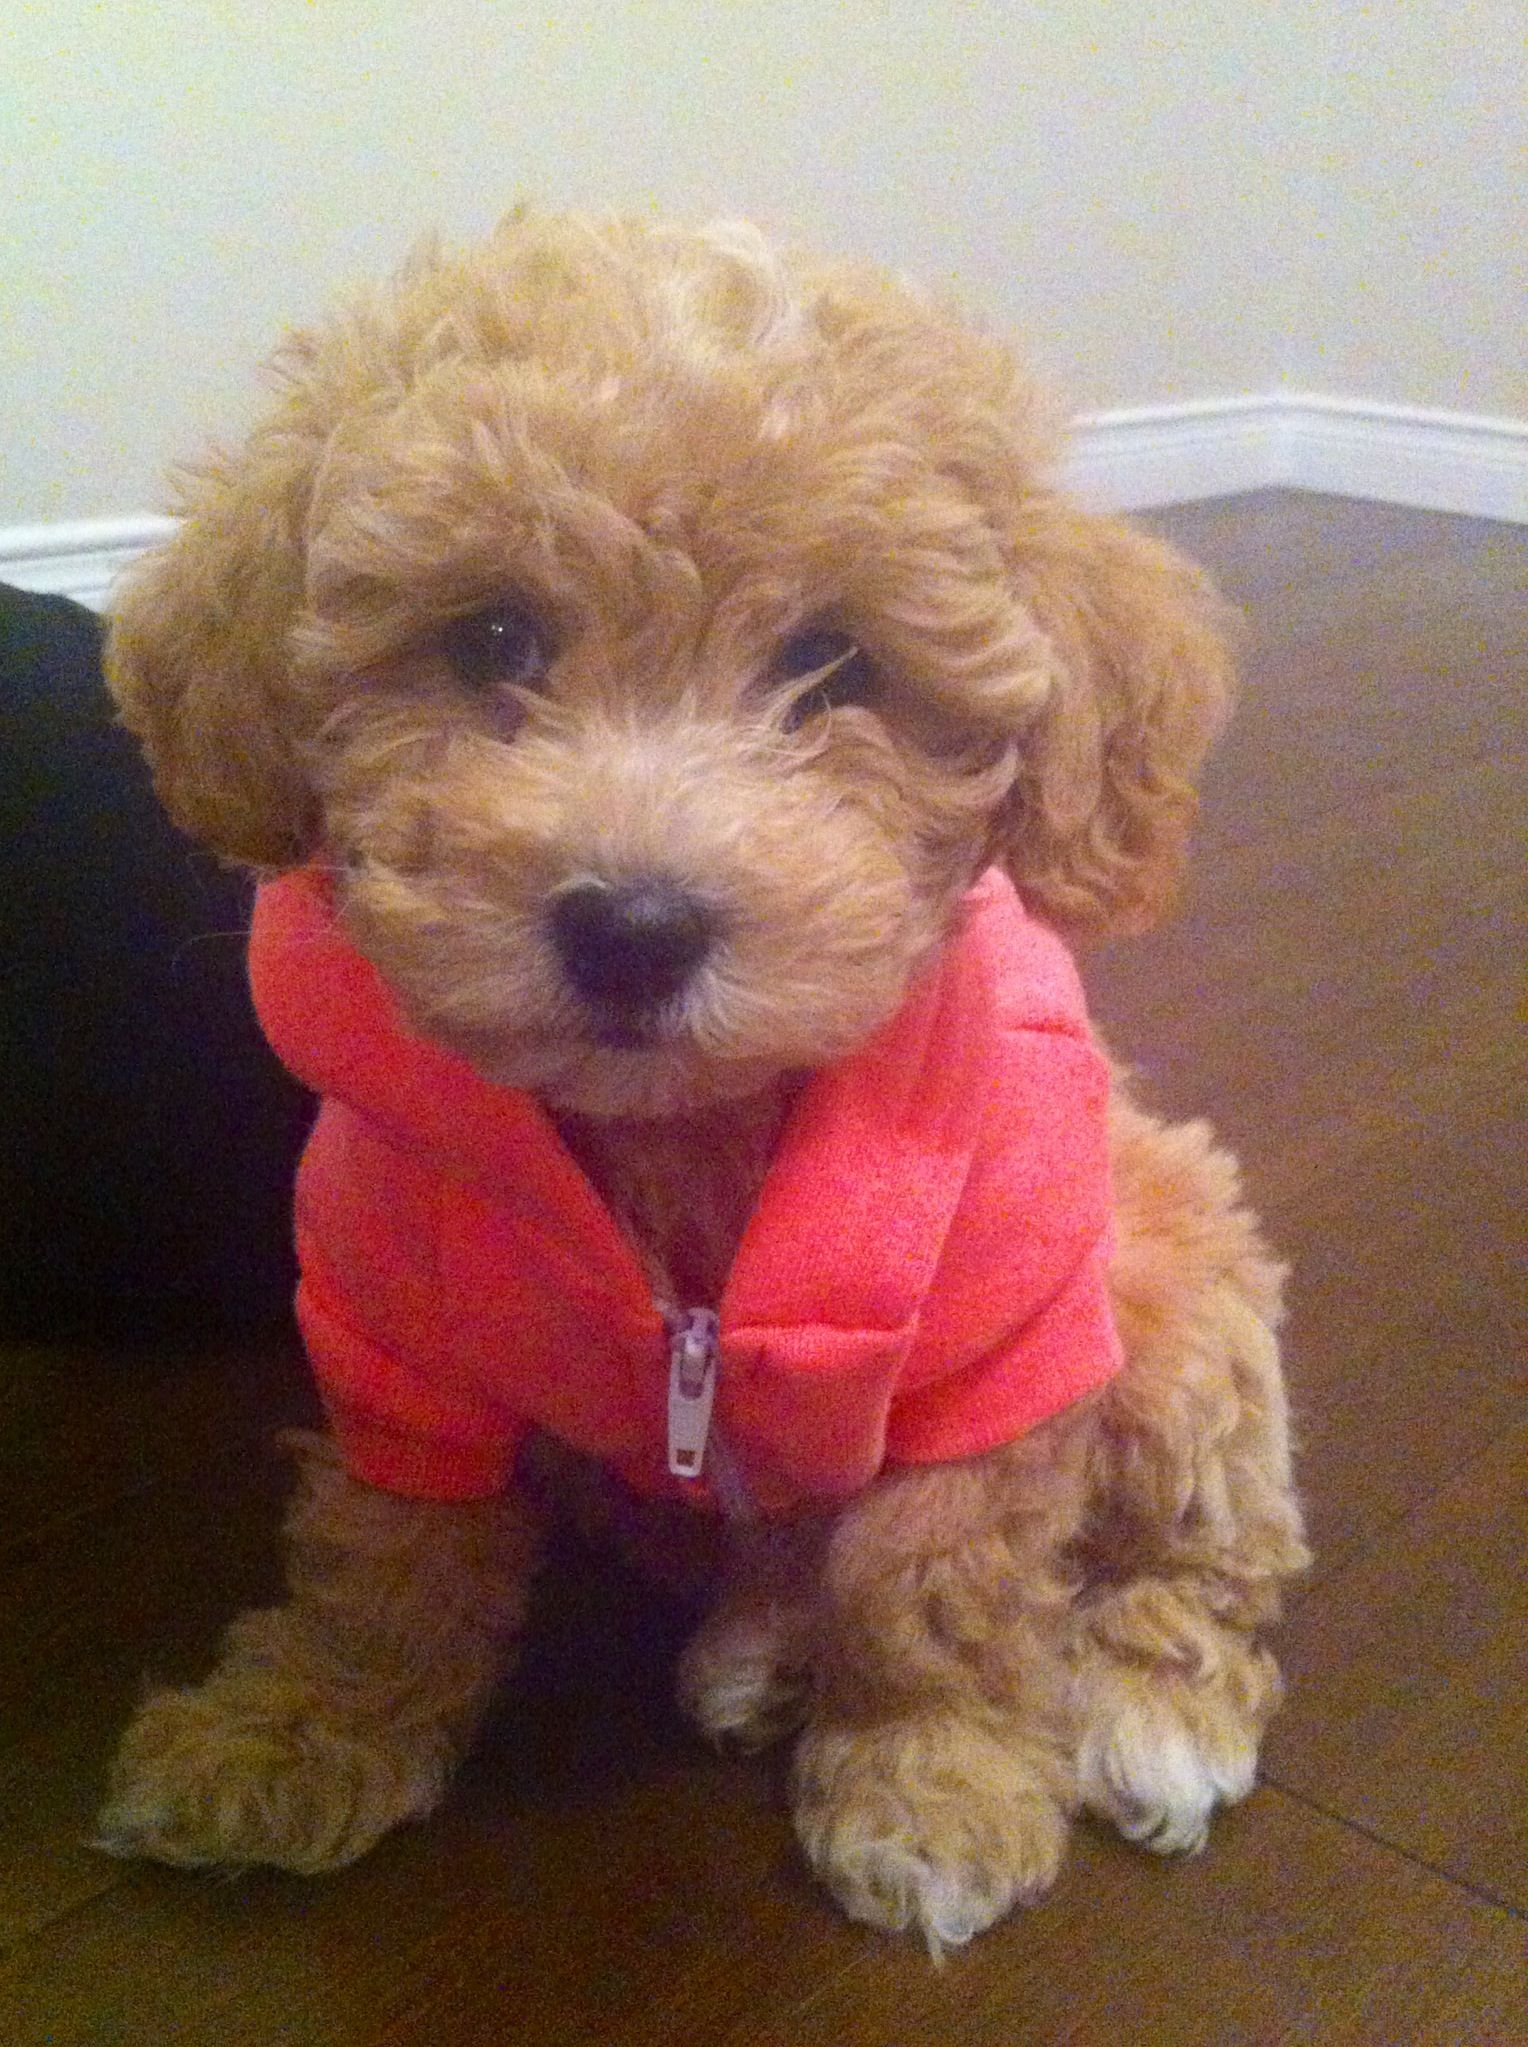 Bichon Poodle My Baby Sophie In Her American Apparel Sweater She S 8 Weeks Today Puppy Swag Baby Puppies Cute Dog Pictures Poodle Dog